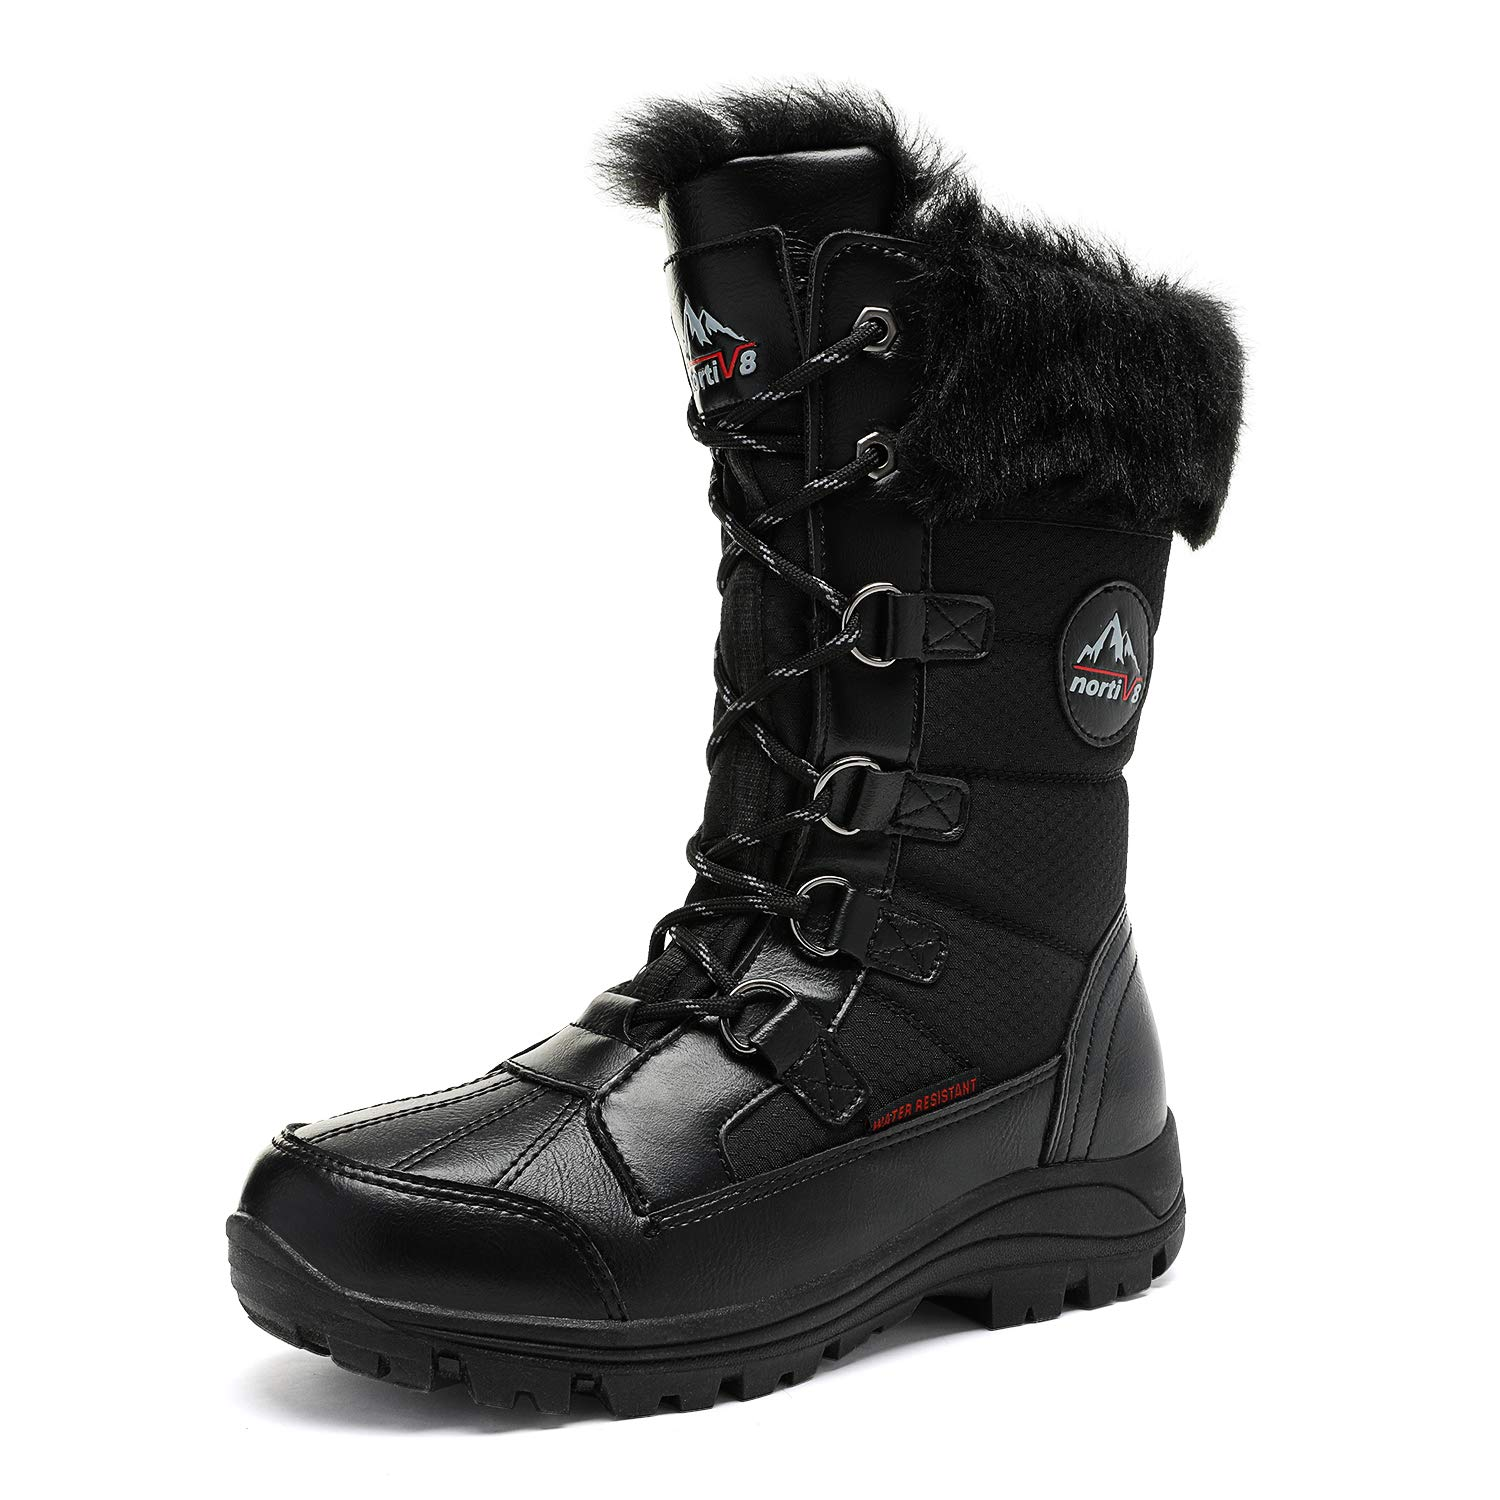 NORTIV 8 Women's Mid Calf Insulated Winter Snow Boots